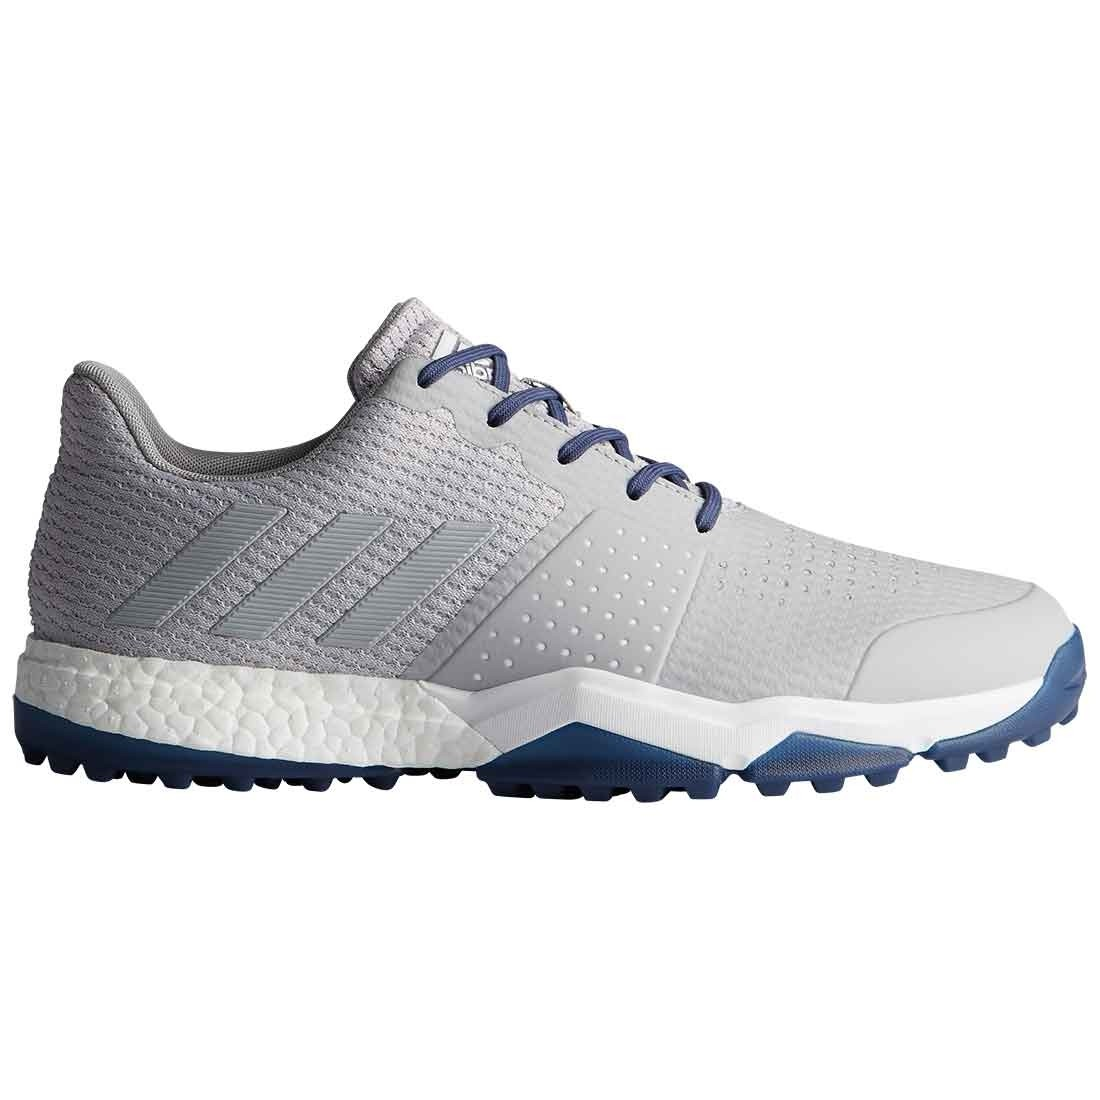 Adidas Adipower S Boost Golf Shoe Review